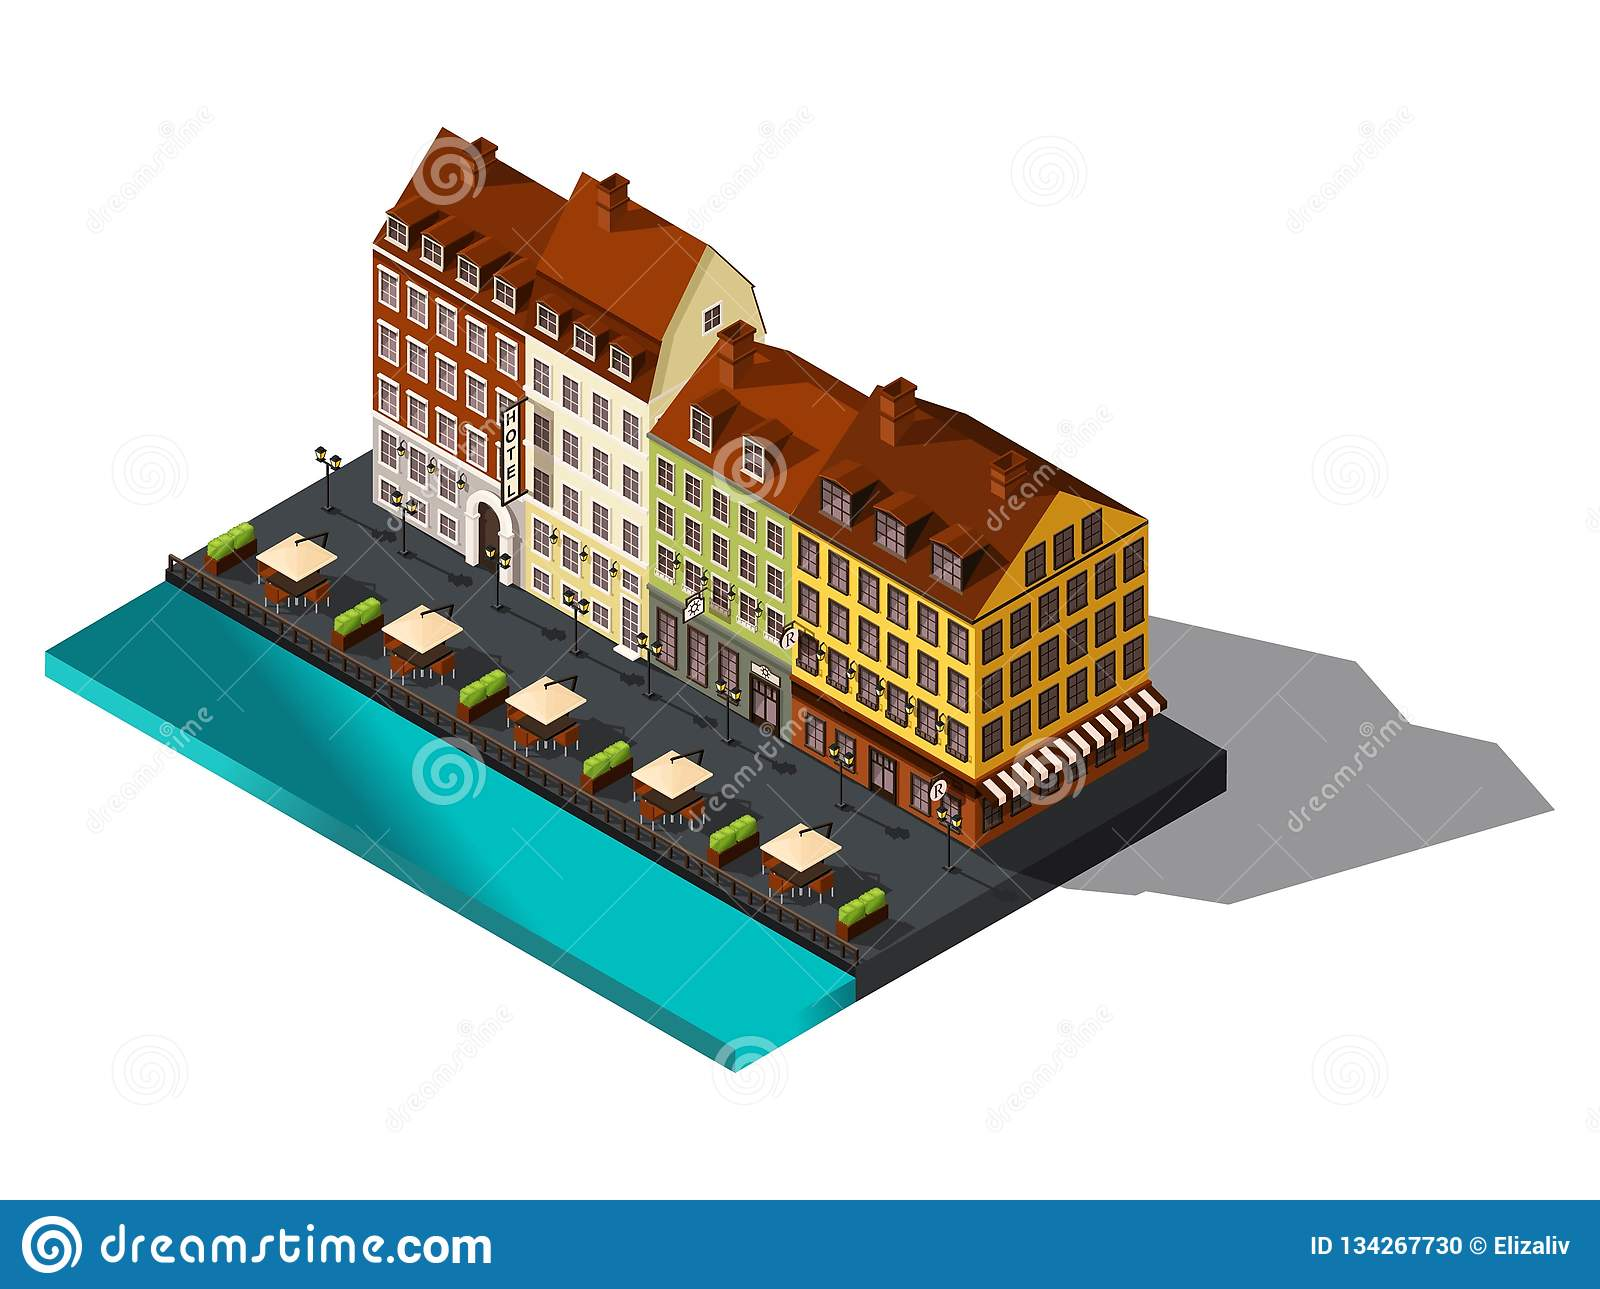 Isometric 3d street from old dov by the sea, hotel, restaurant, Copenhagen, Paris, the historic center of the city, old buildings